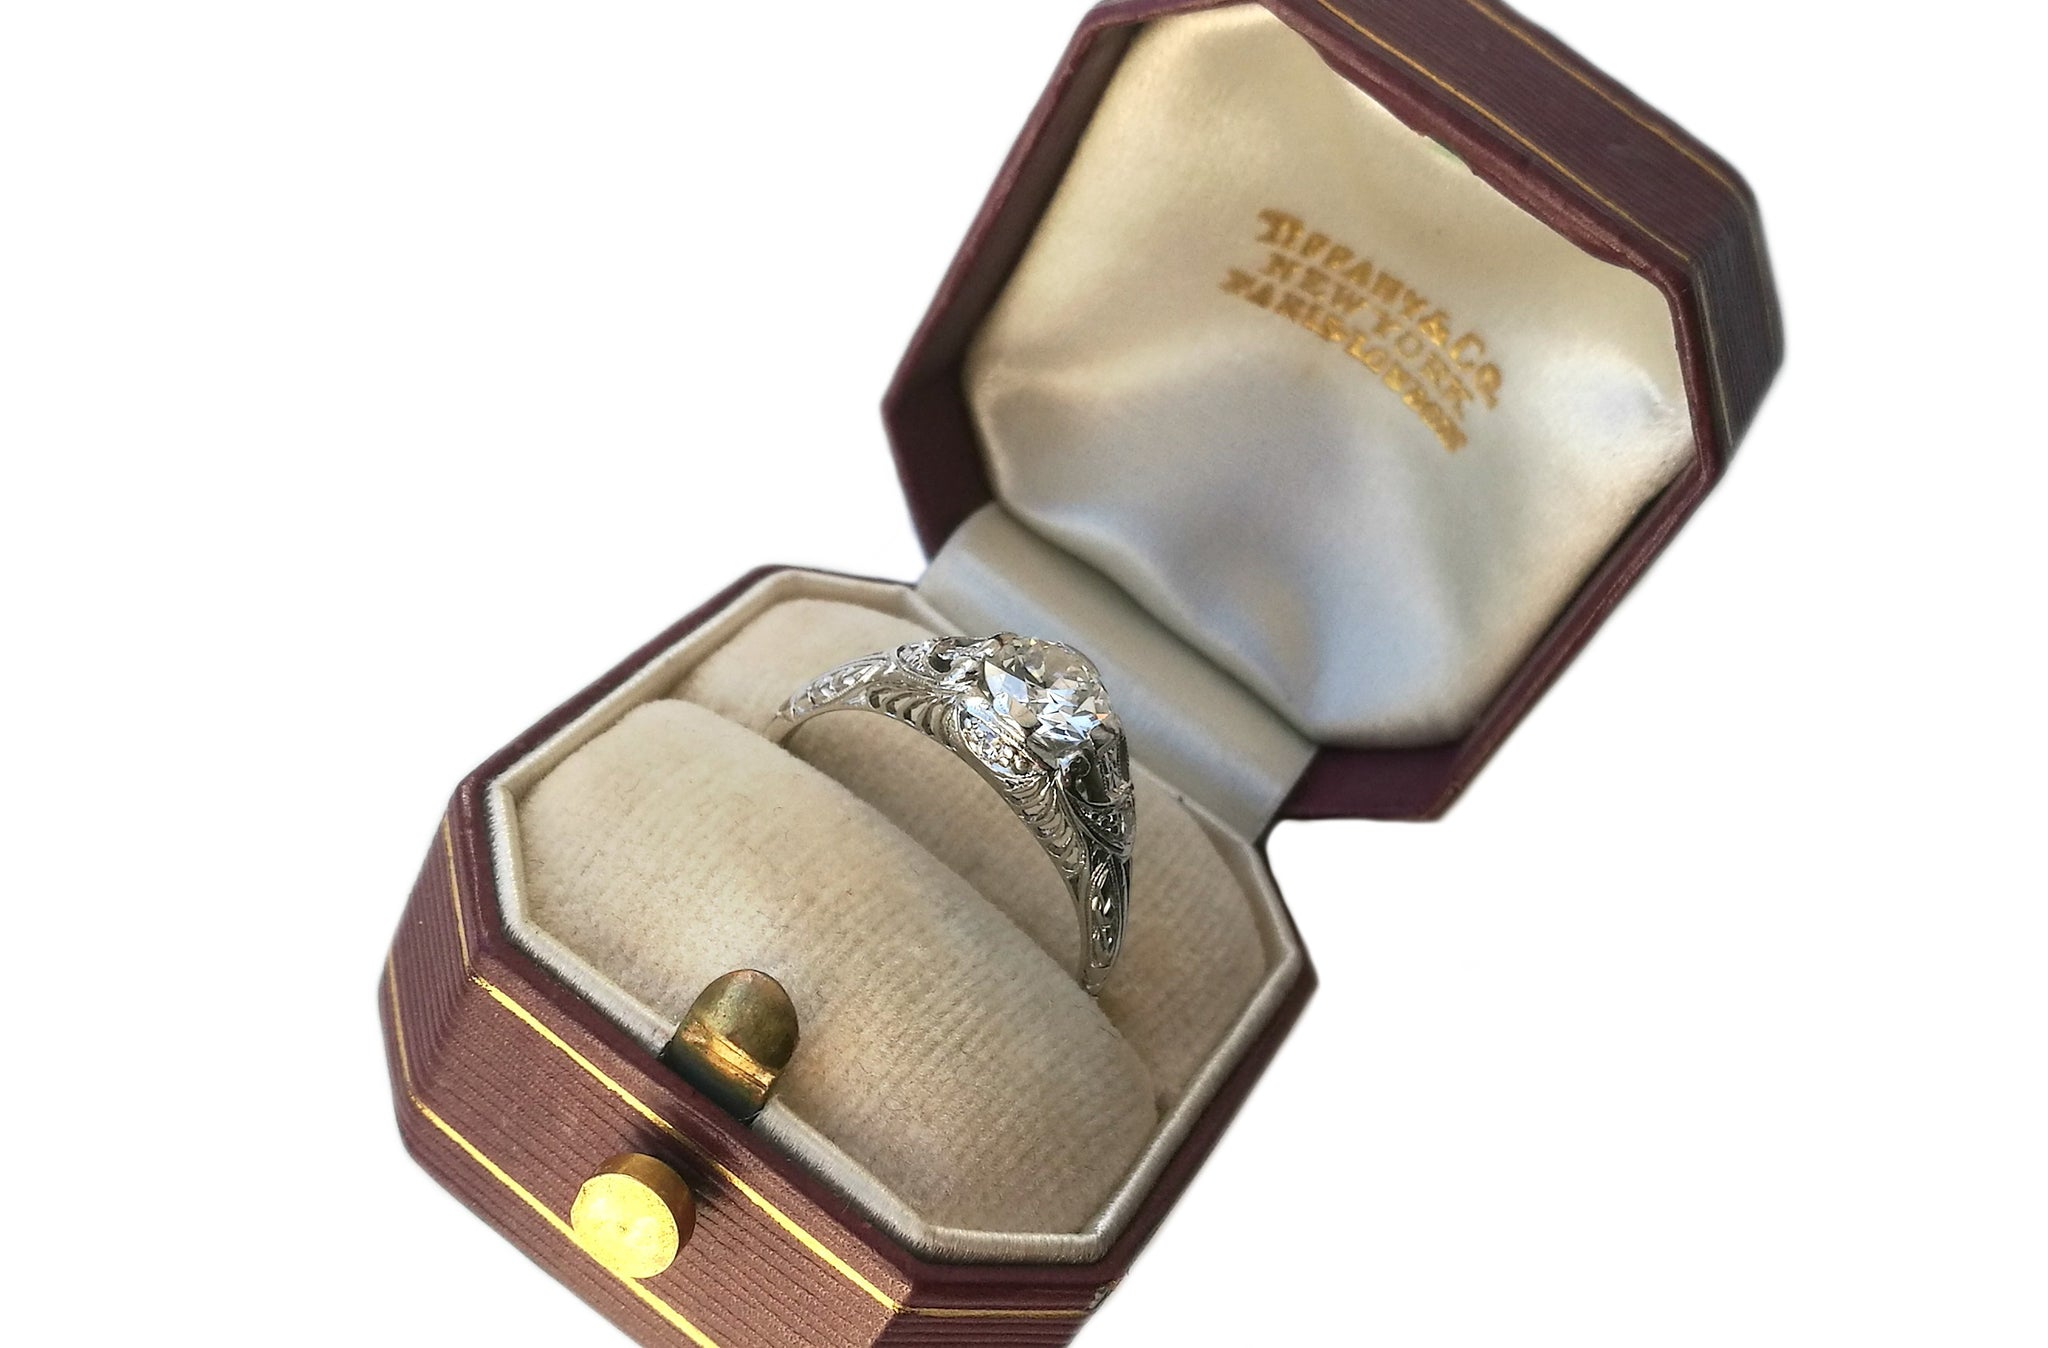 Antique Art Deco .75ct Old Cut Diamond 1920s Tiffany & Co Engagement Ring Box